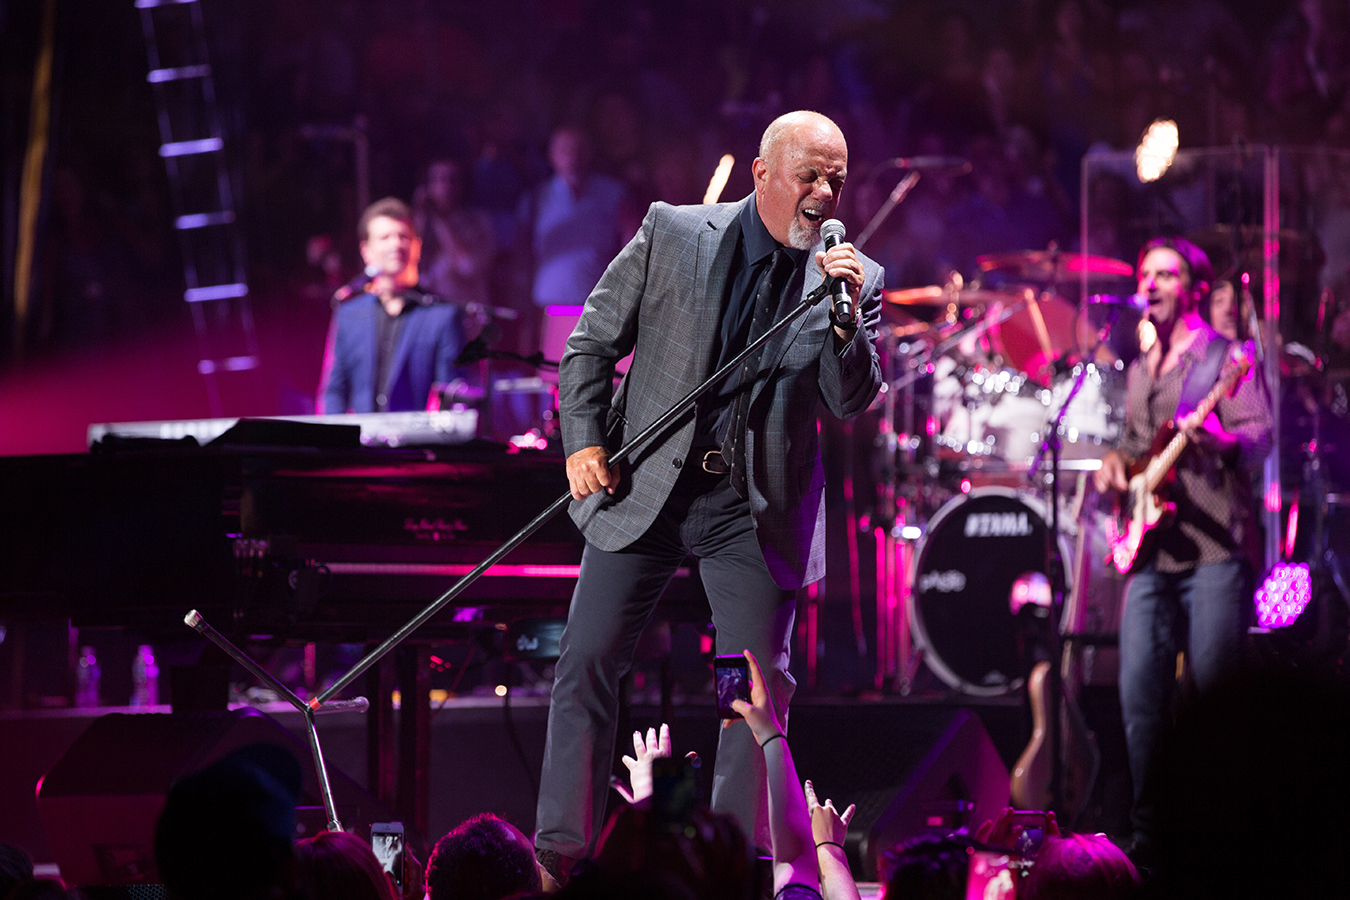 Billy Joel At Madison Square Garden On Friday, April 10